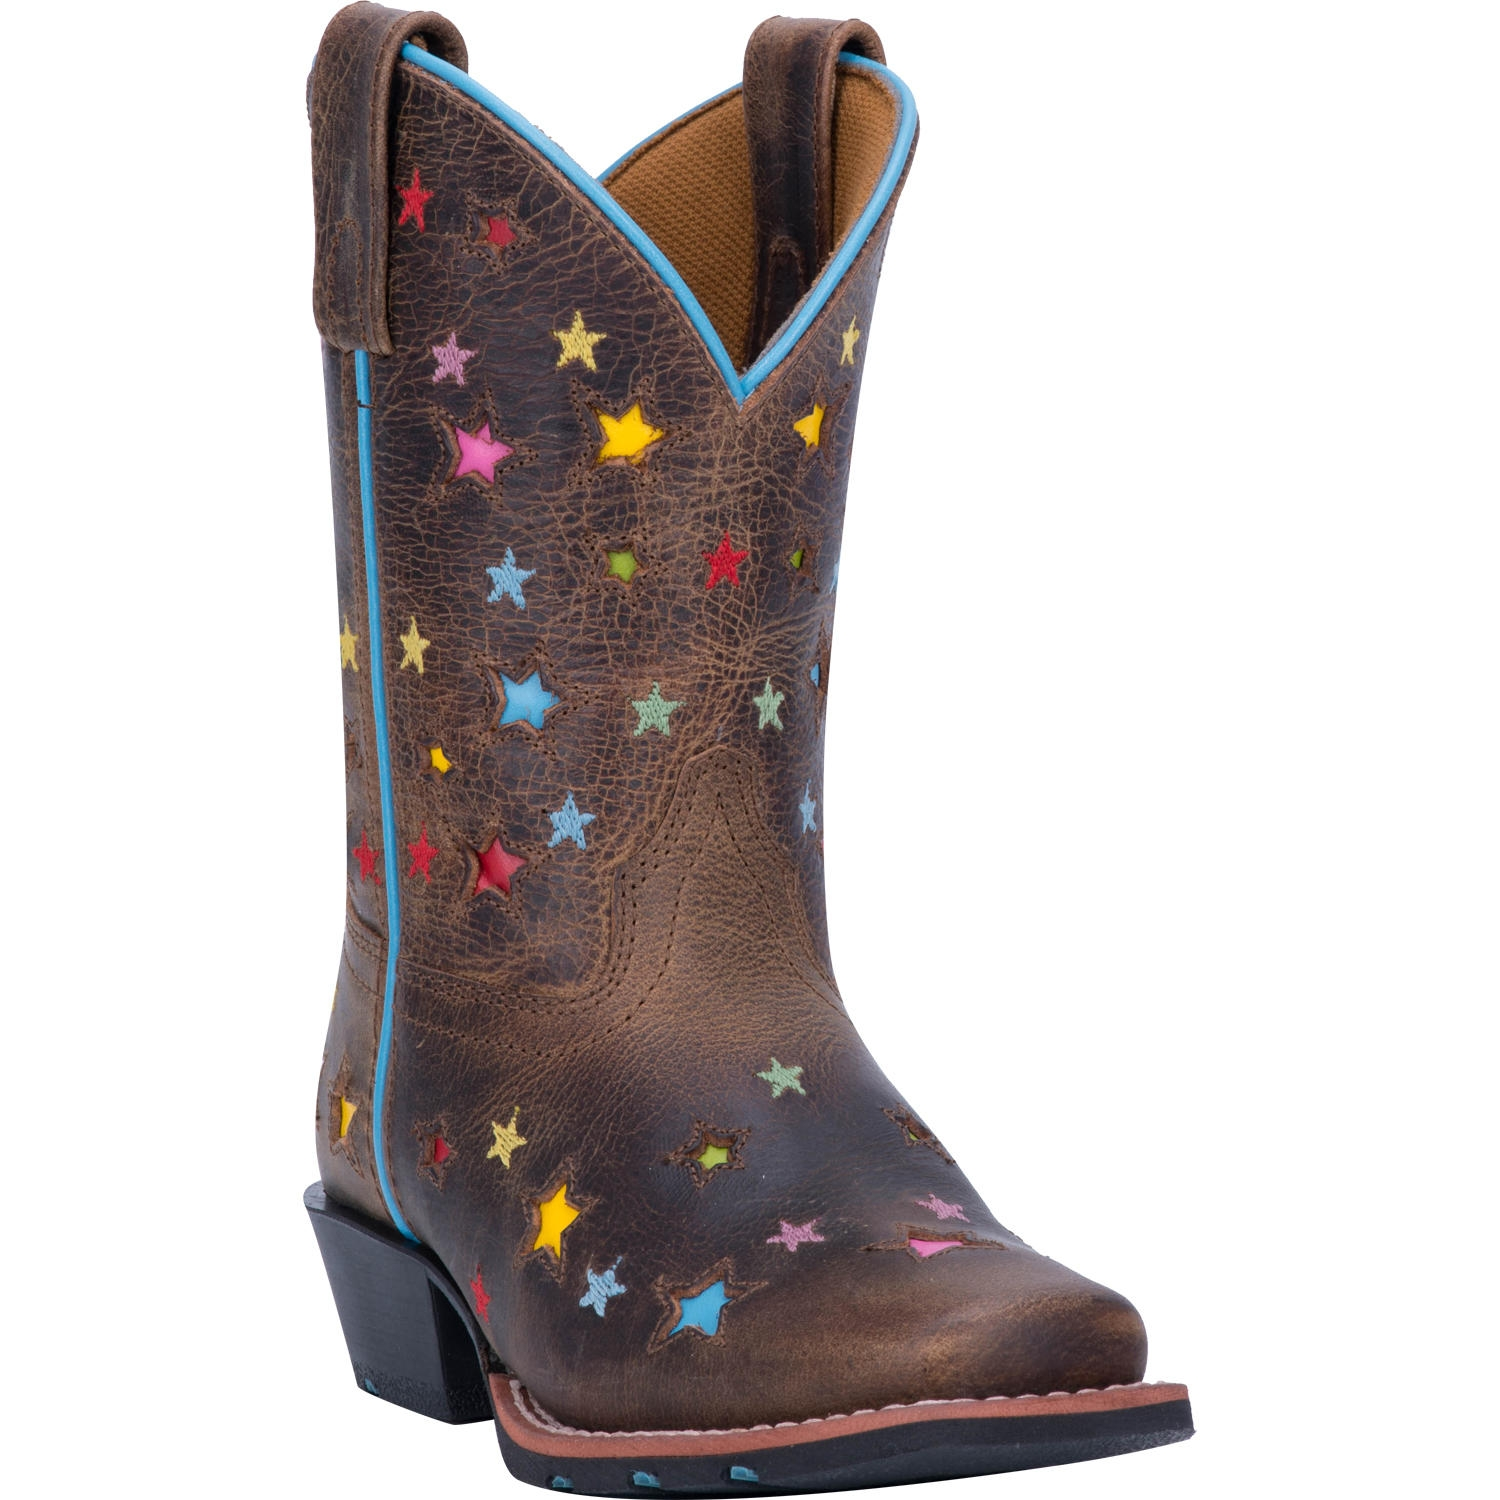 Dan Post Starlett - Childrens Cowboy Boots